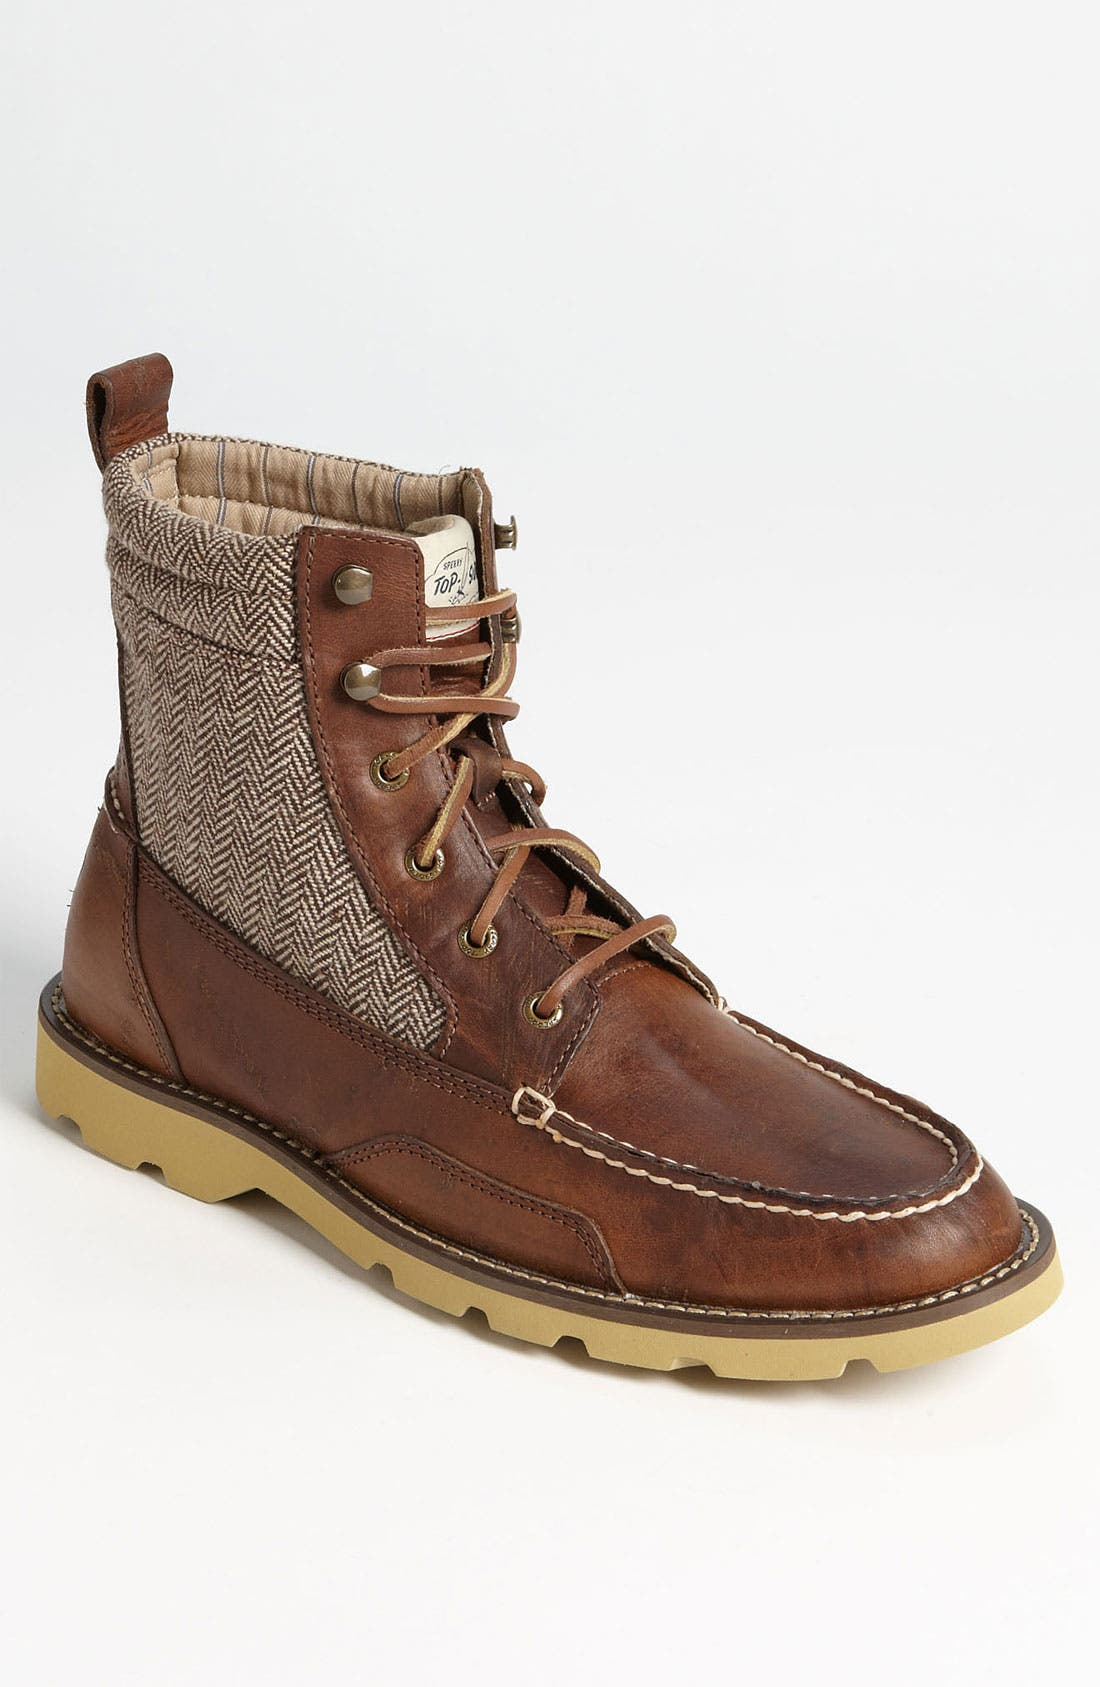 Main Image - Sperry Top-Sider® 'Shipyard' Moc Toe Boot